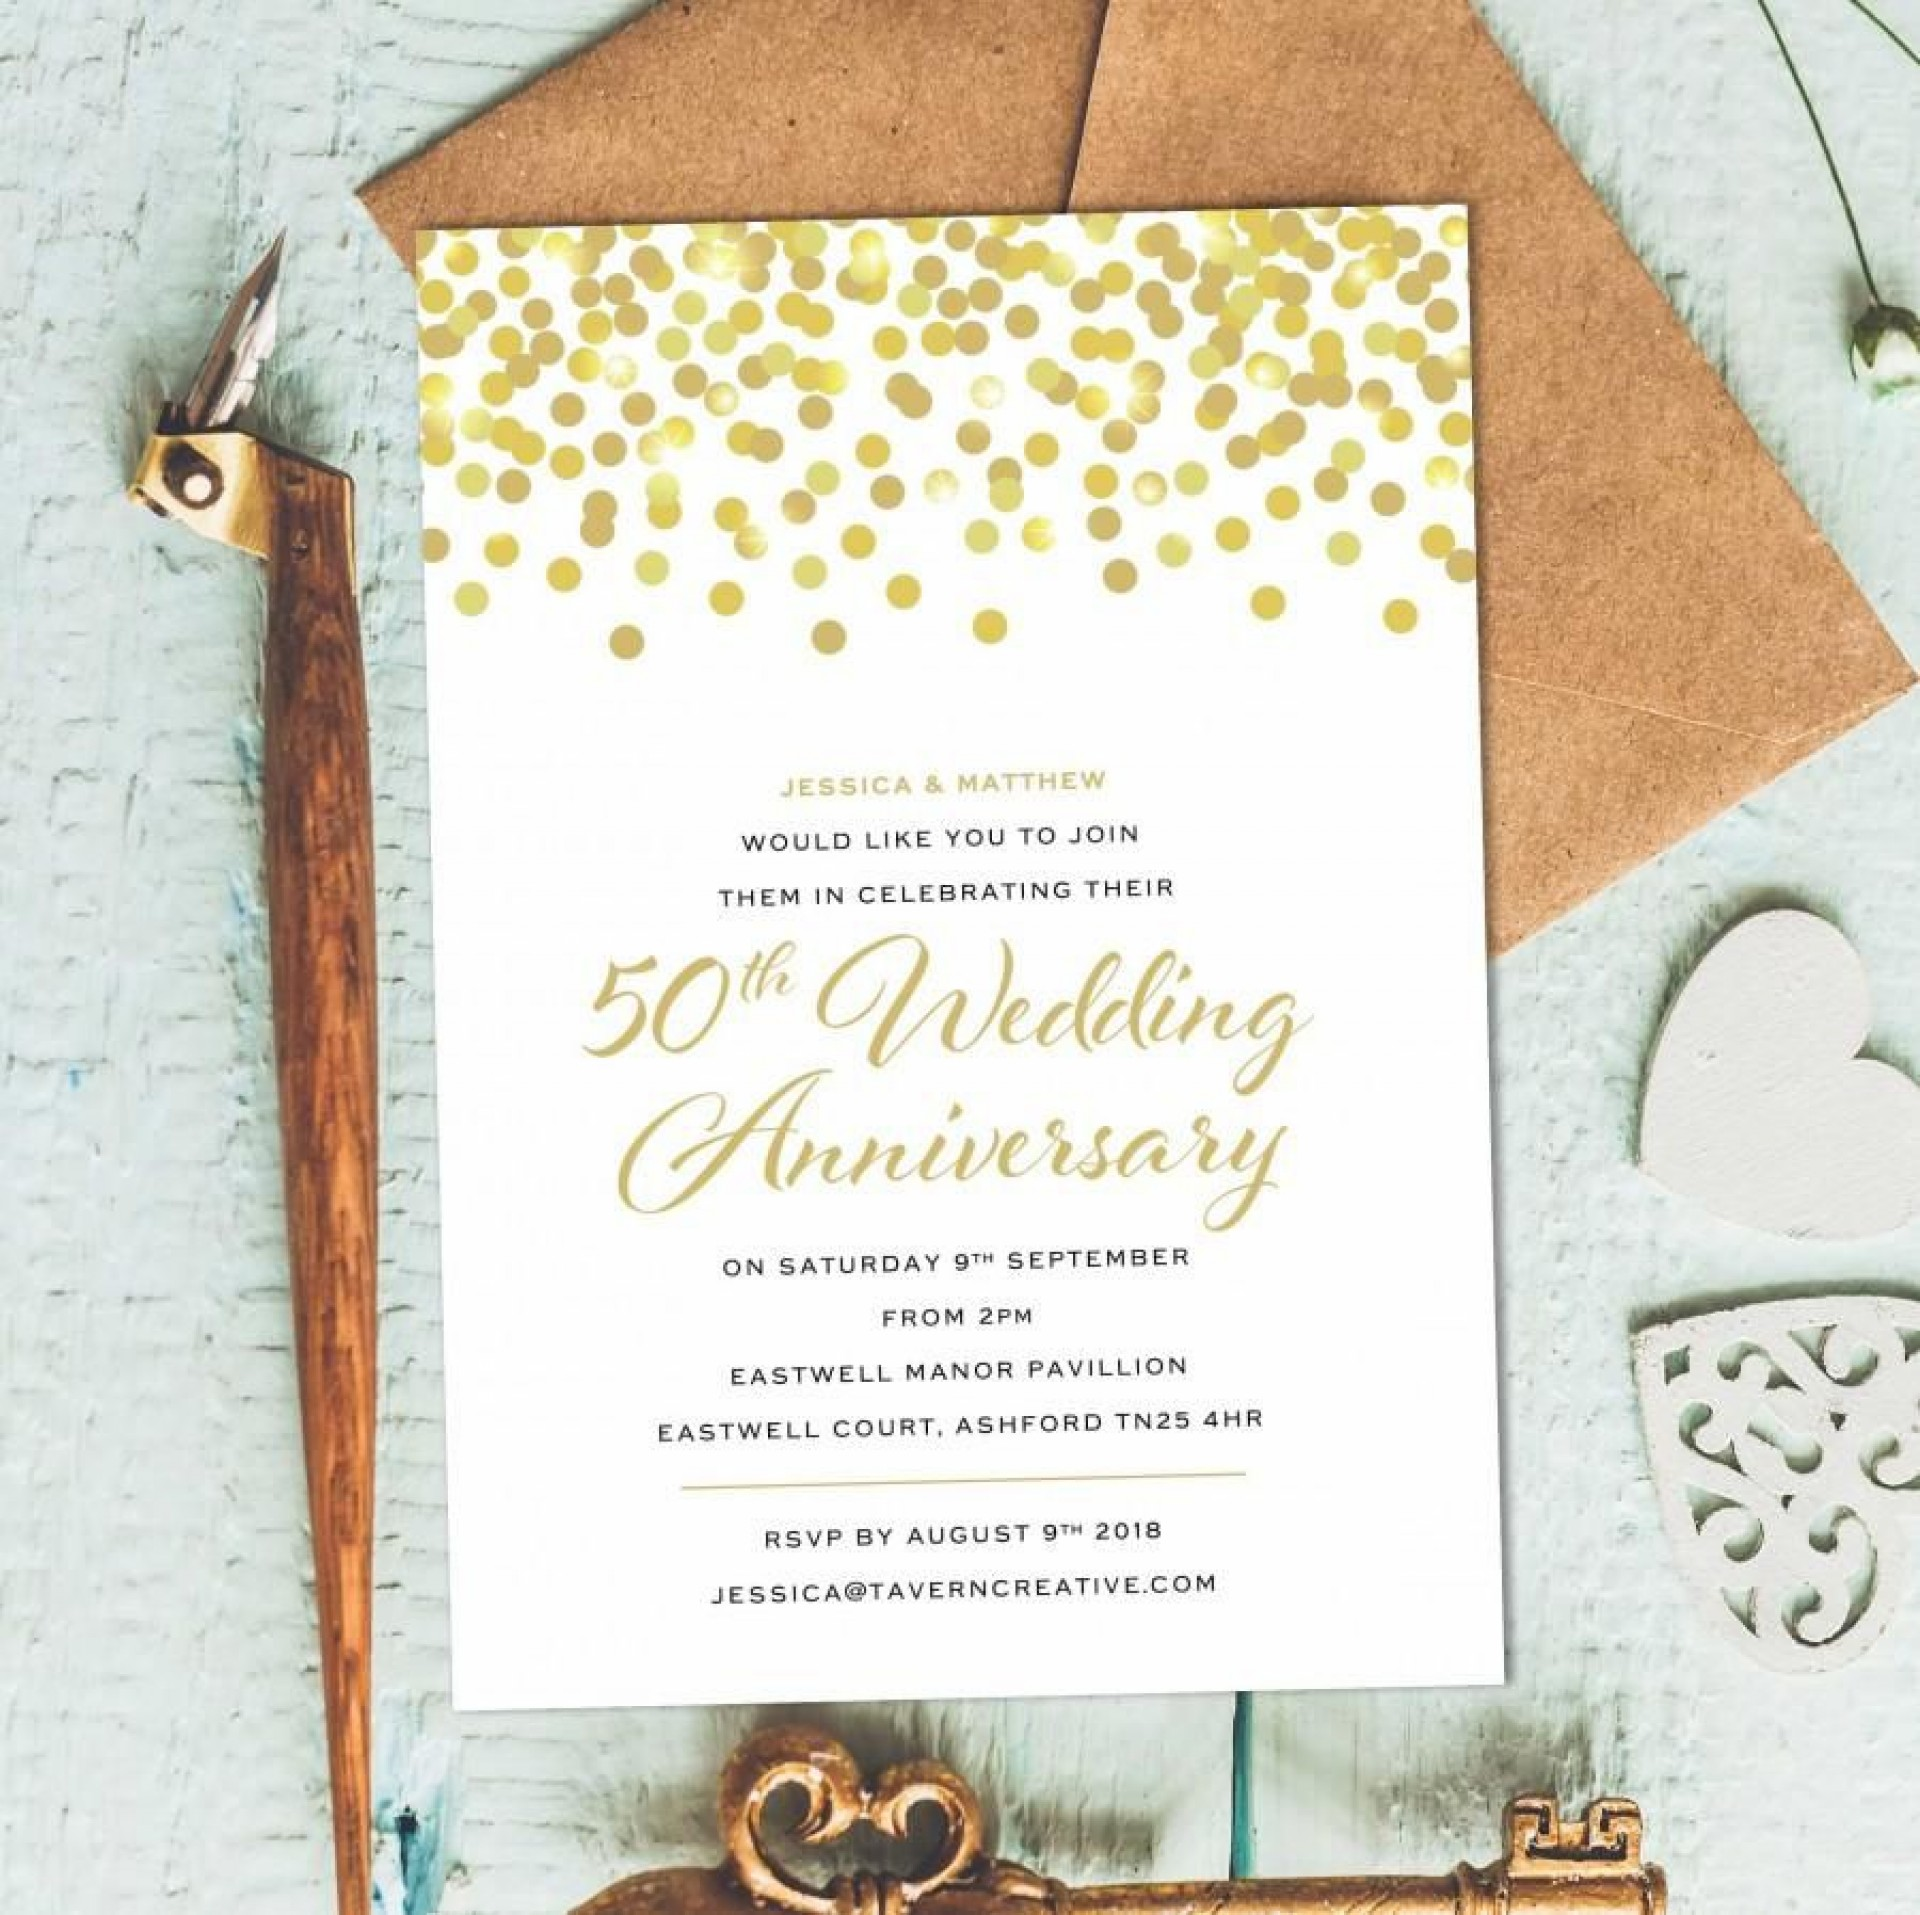 004 Striking 50th Anniversary Invitation Template Free Highest Clarity  For Word Golden Wedding Download1920